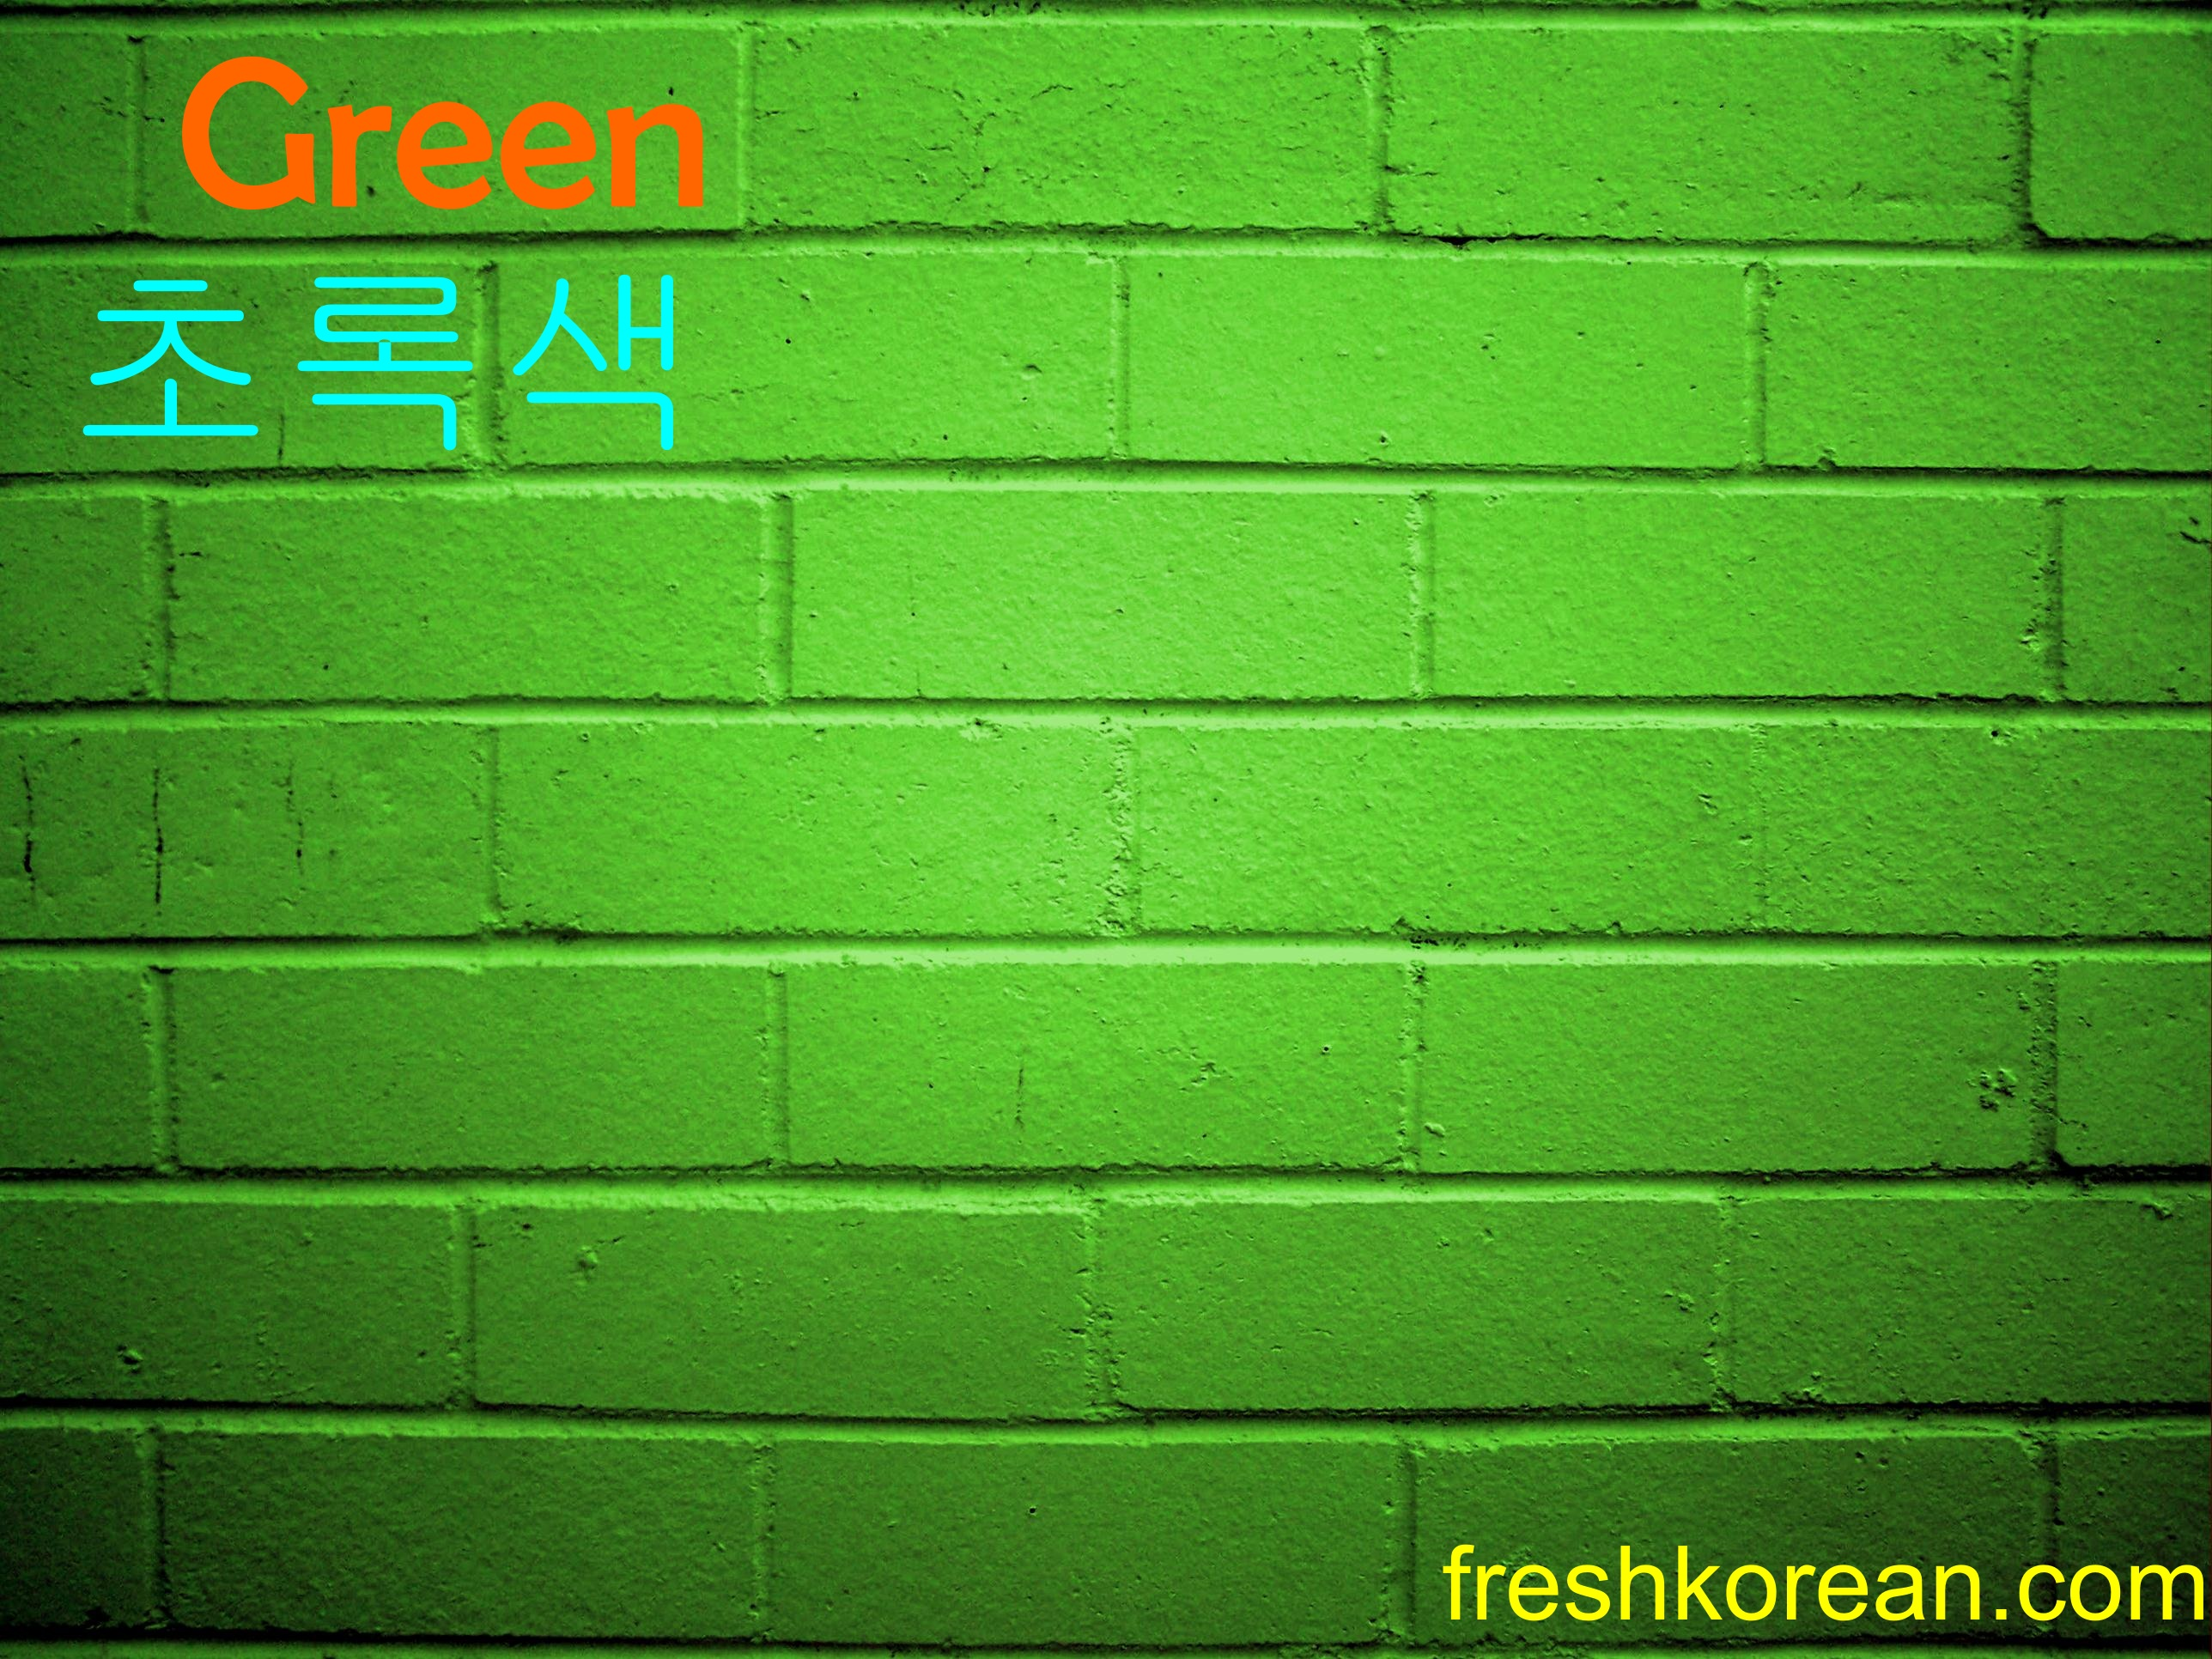 Green Fresh Korean Word Of The Day For Wednesday August